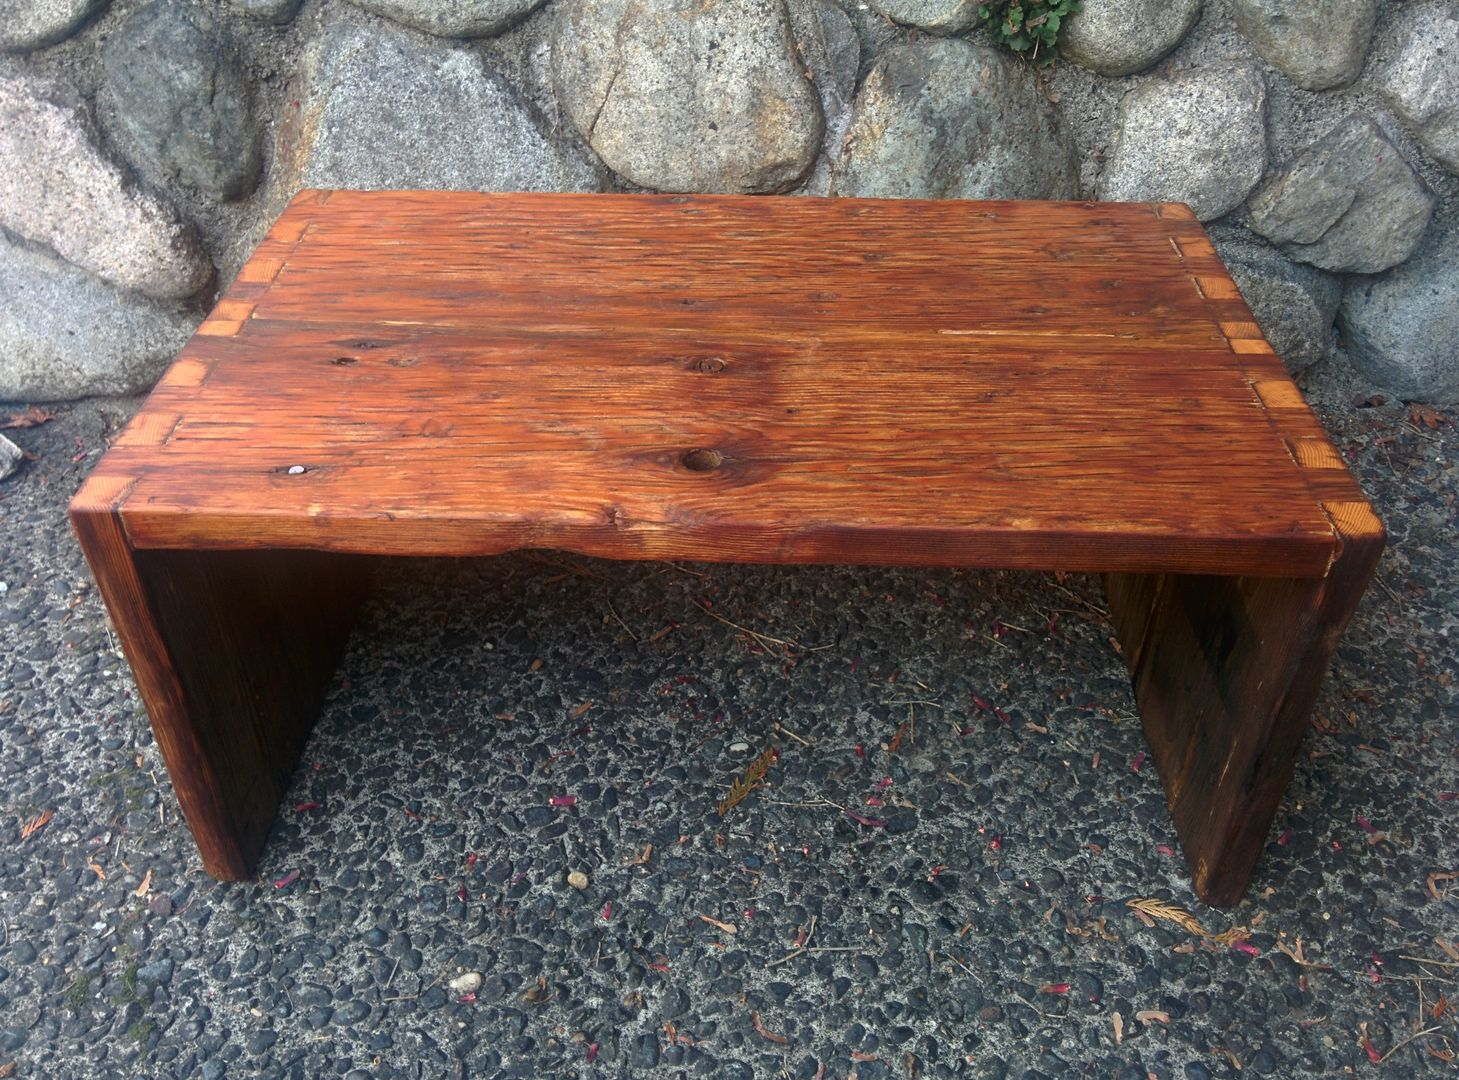 Reclaimed Douglas Fir Coffee Table With Dove Tail Joints